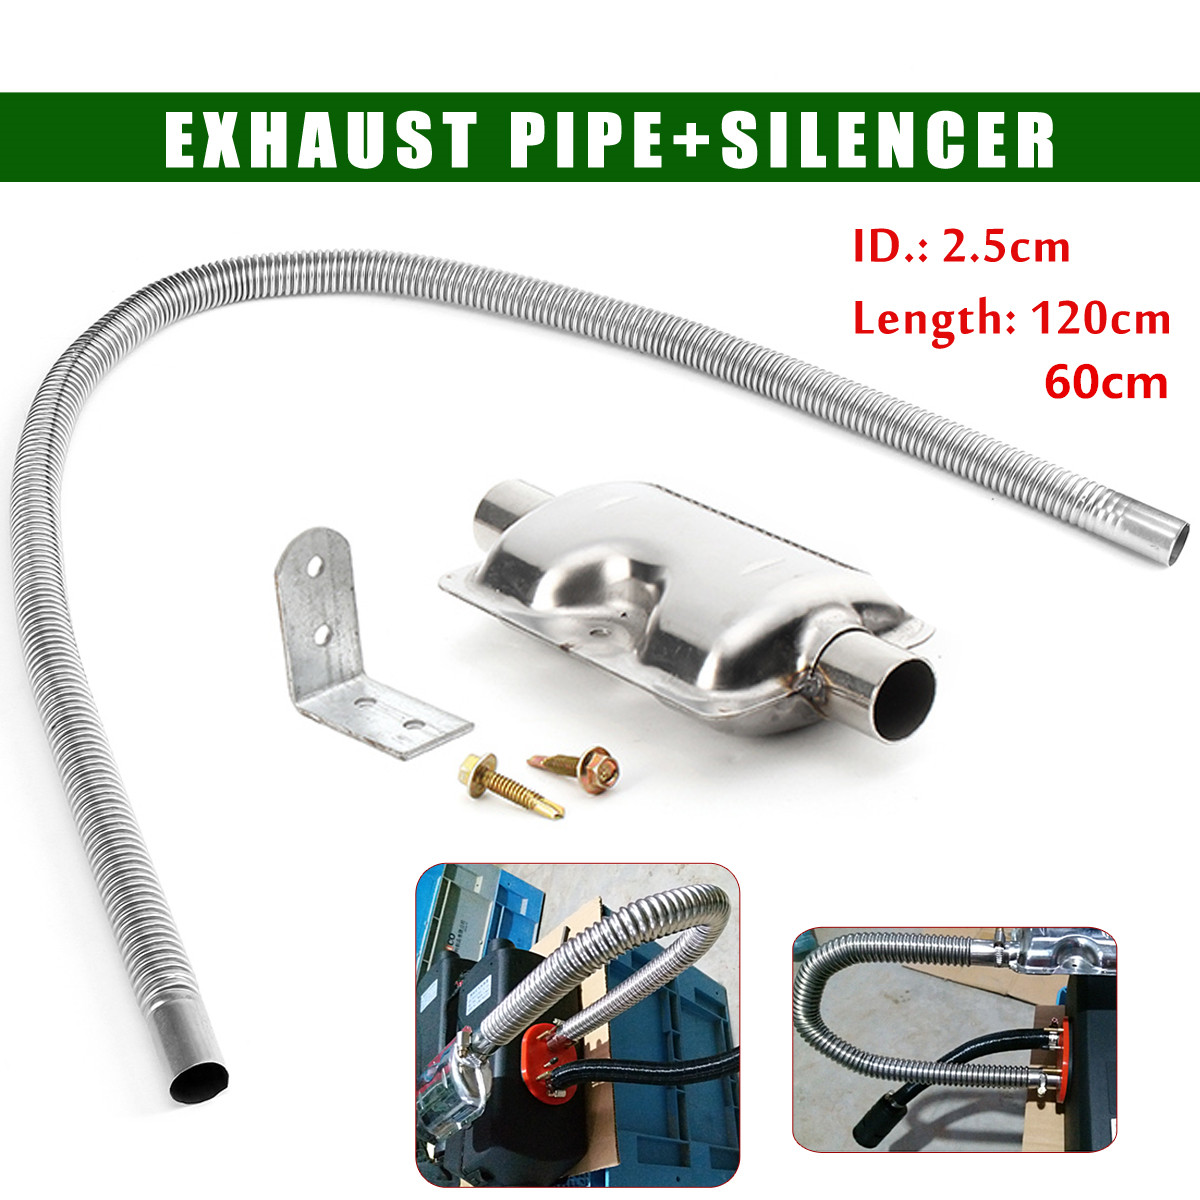 120cm Stainless Steel Exhaust Muffler Silencer Clamps Bracket Gas Vent Hose Portable Pipe Silence For Air Diesels Car Heater Kit image